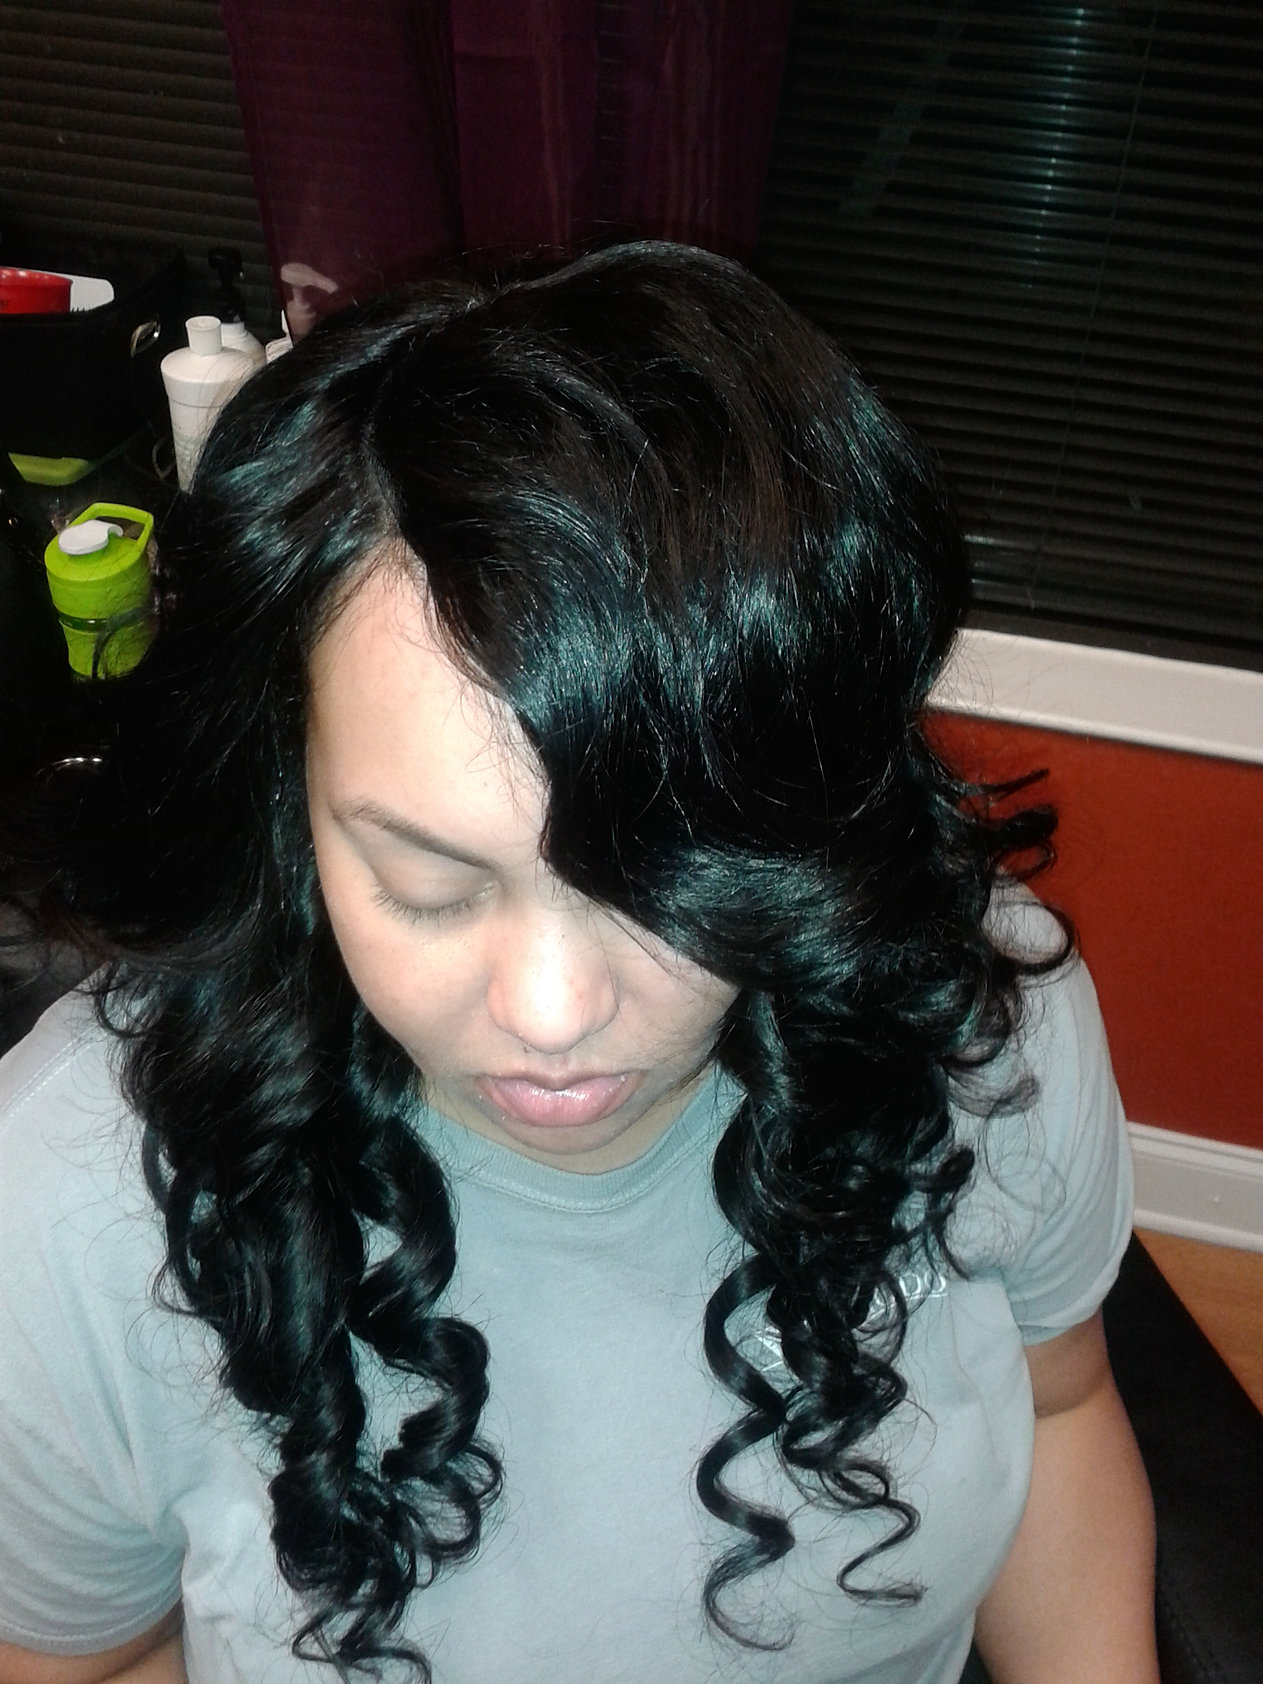 After Full SewIn with side closure!